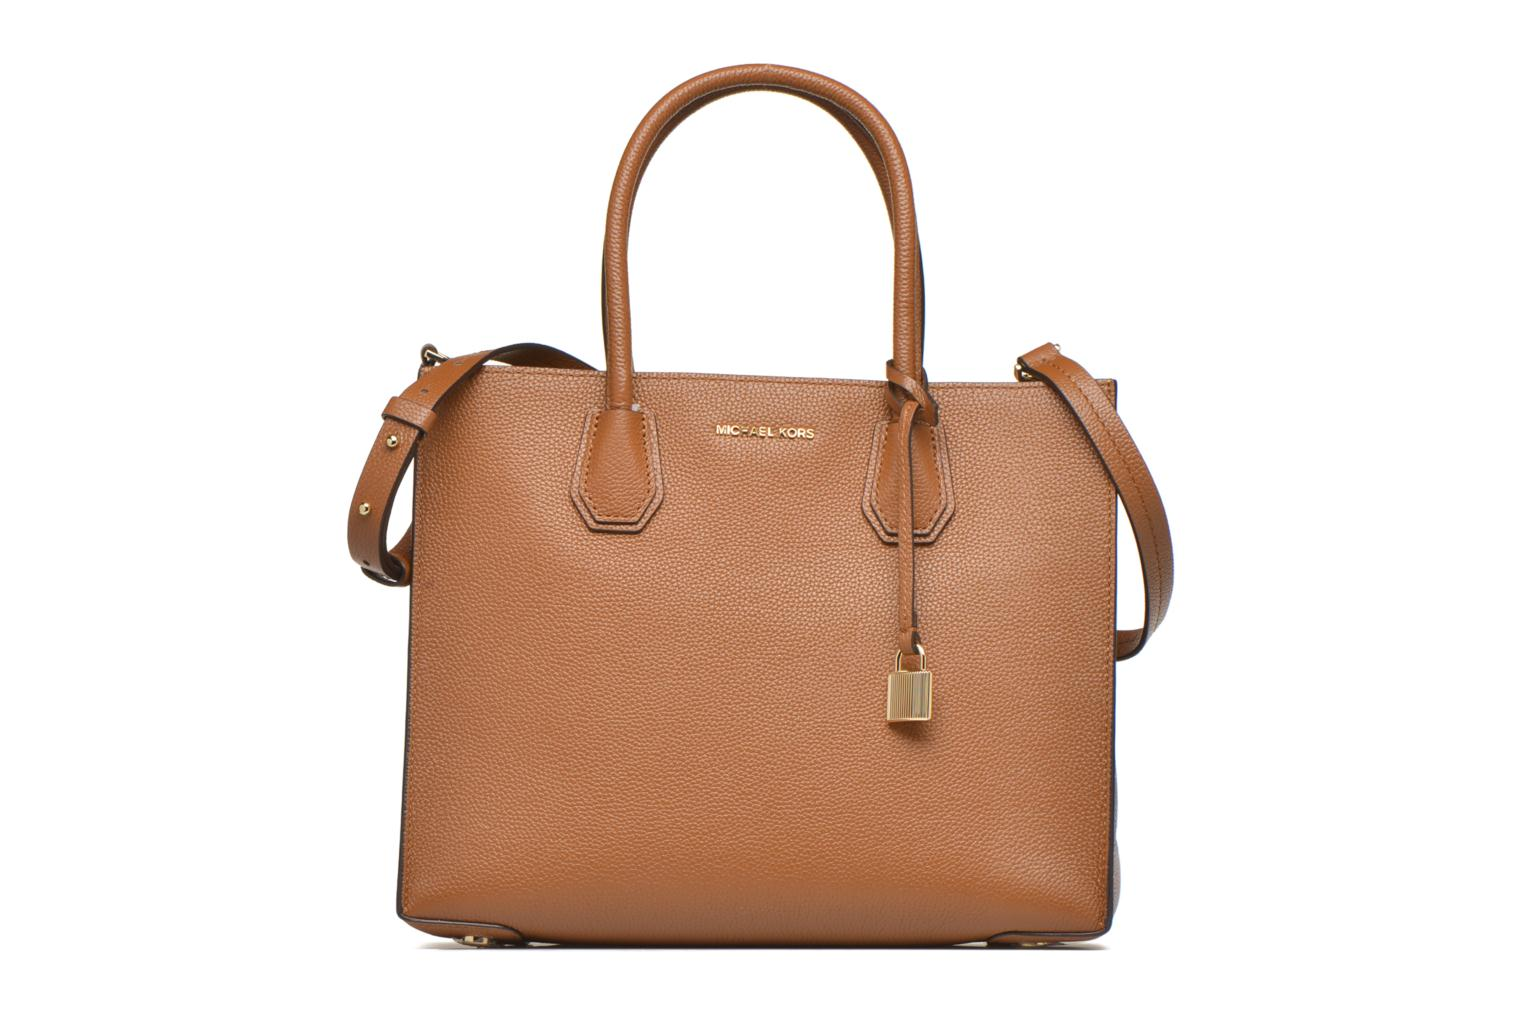 MERCER LG Convertible Satchel Luggage